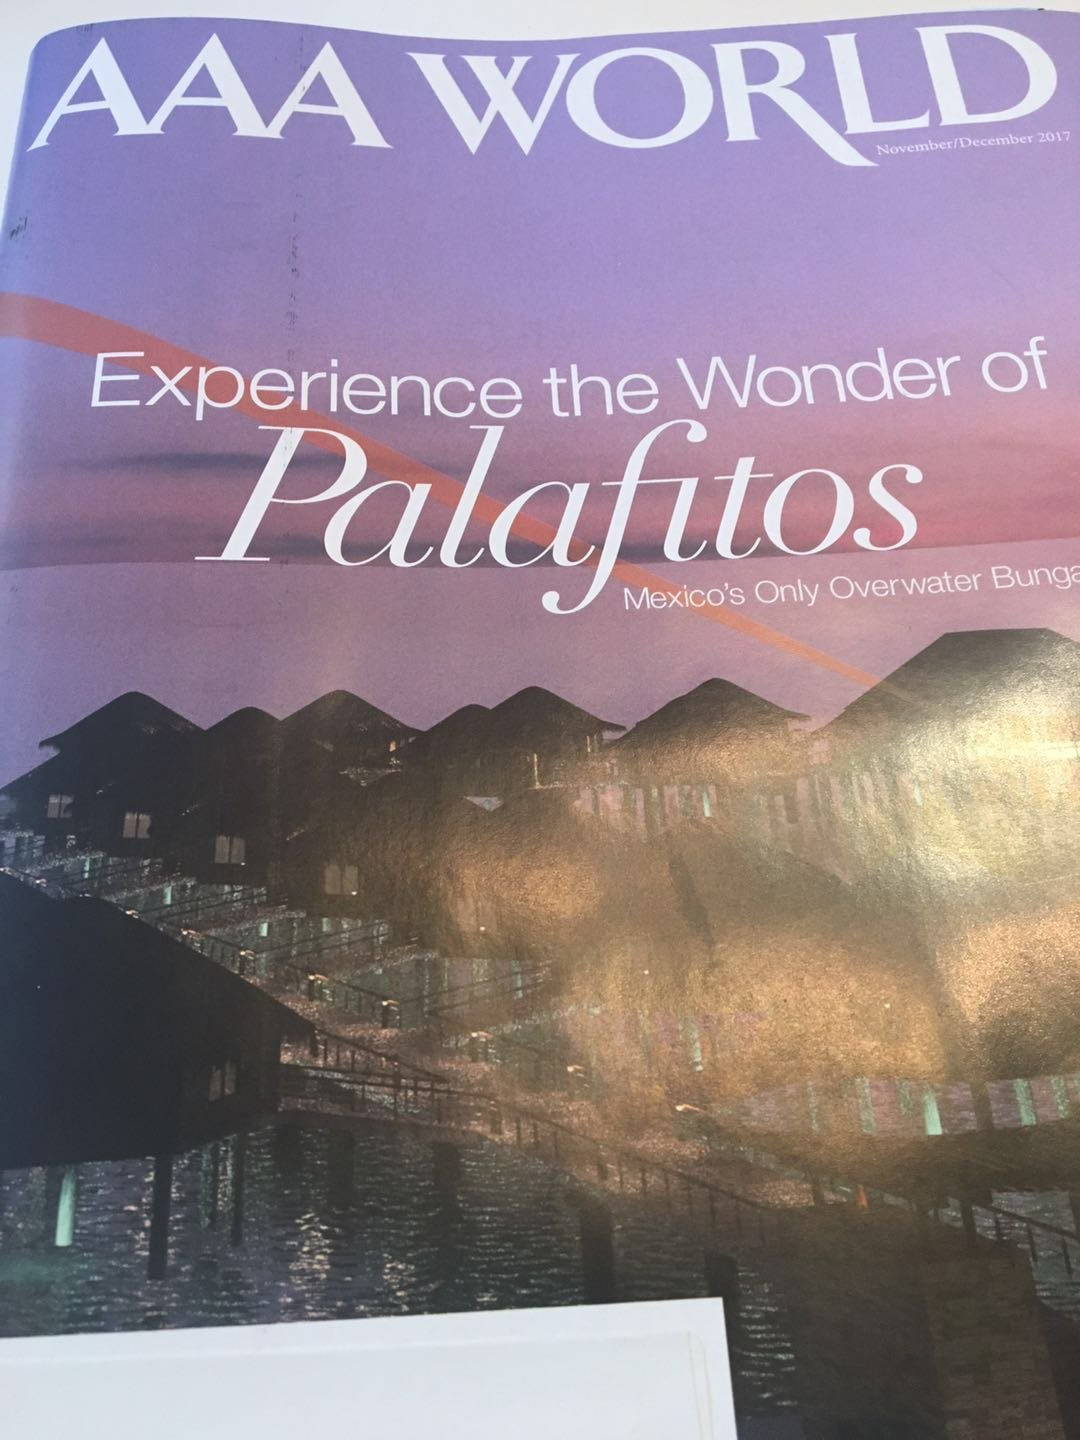 AAA Traveler World Magazine November/December 2017 (Palafitos)